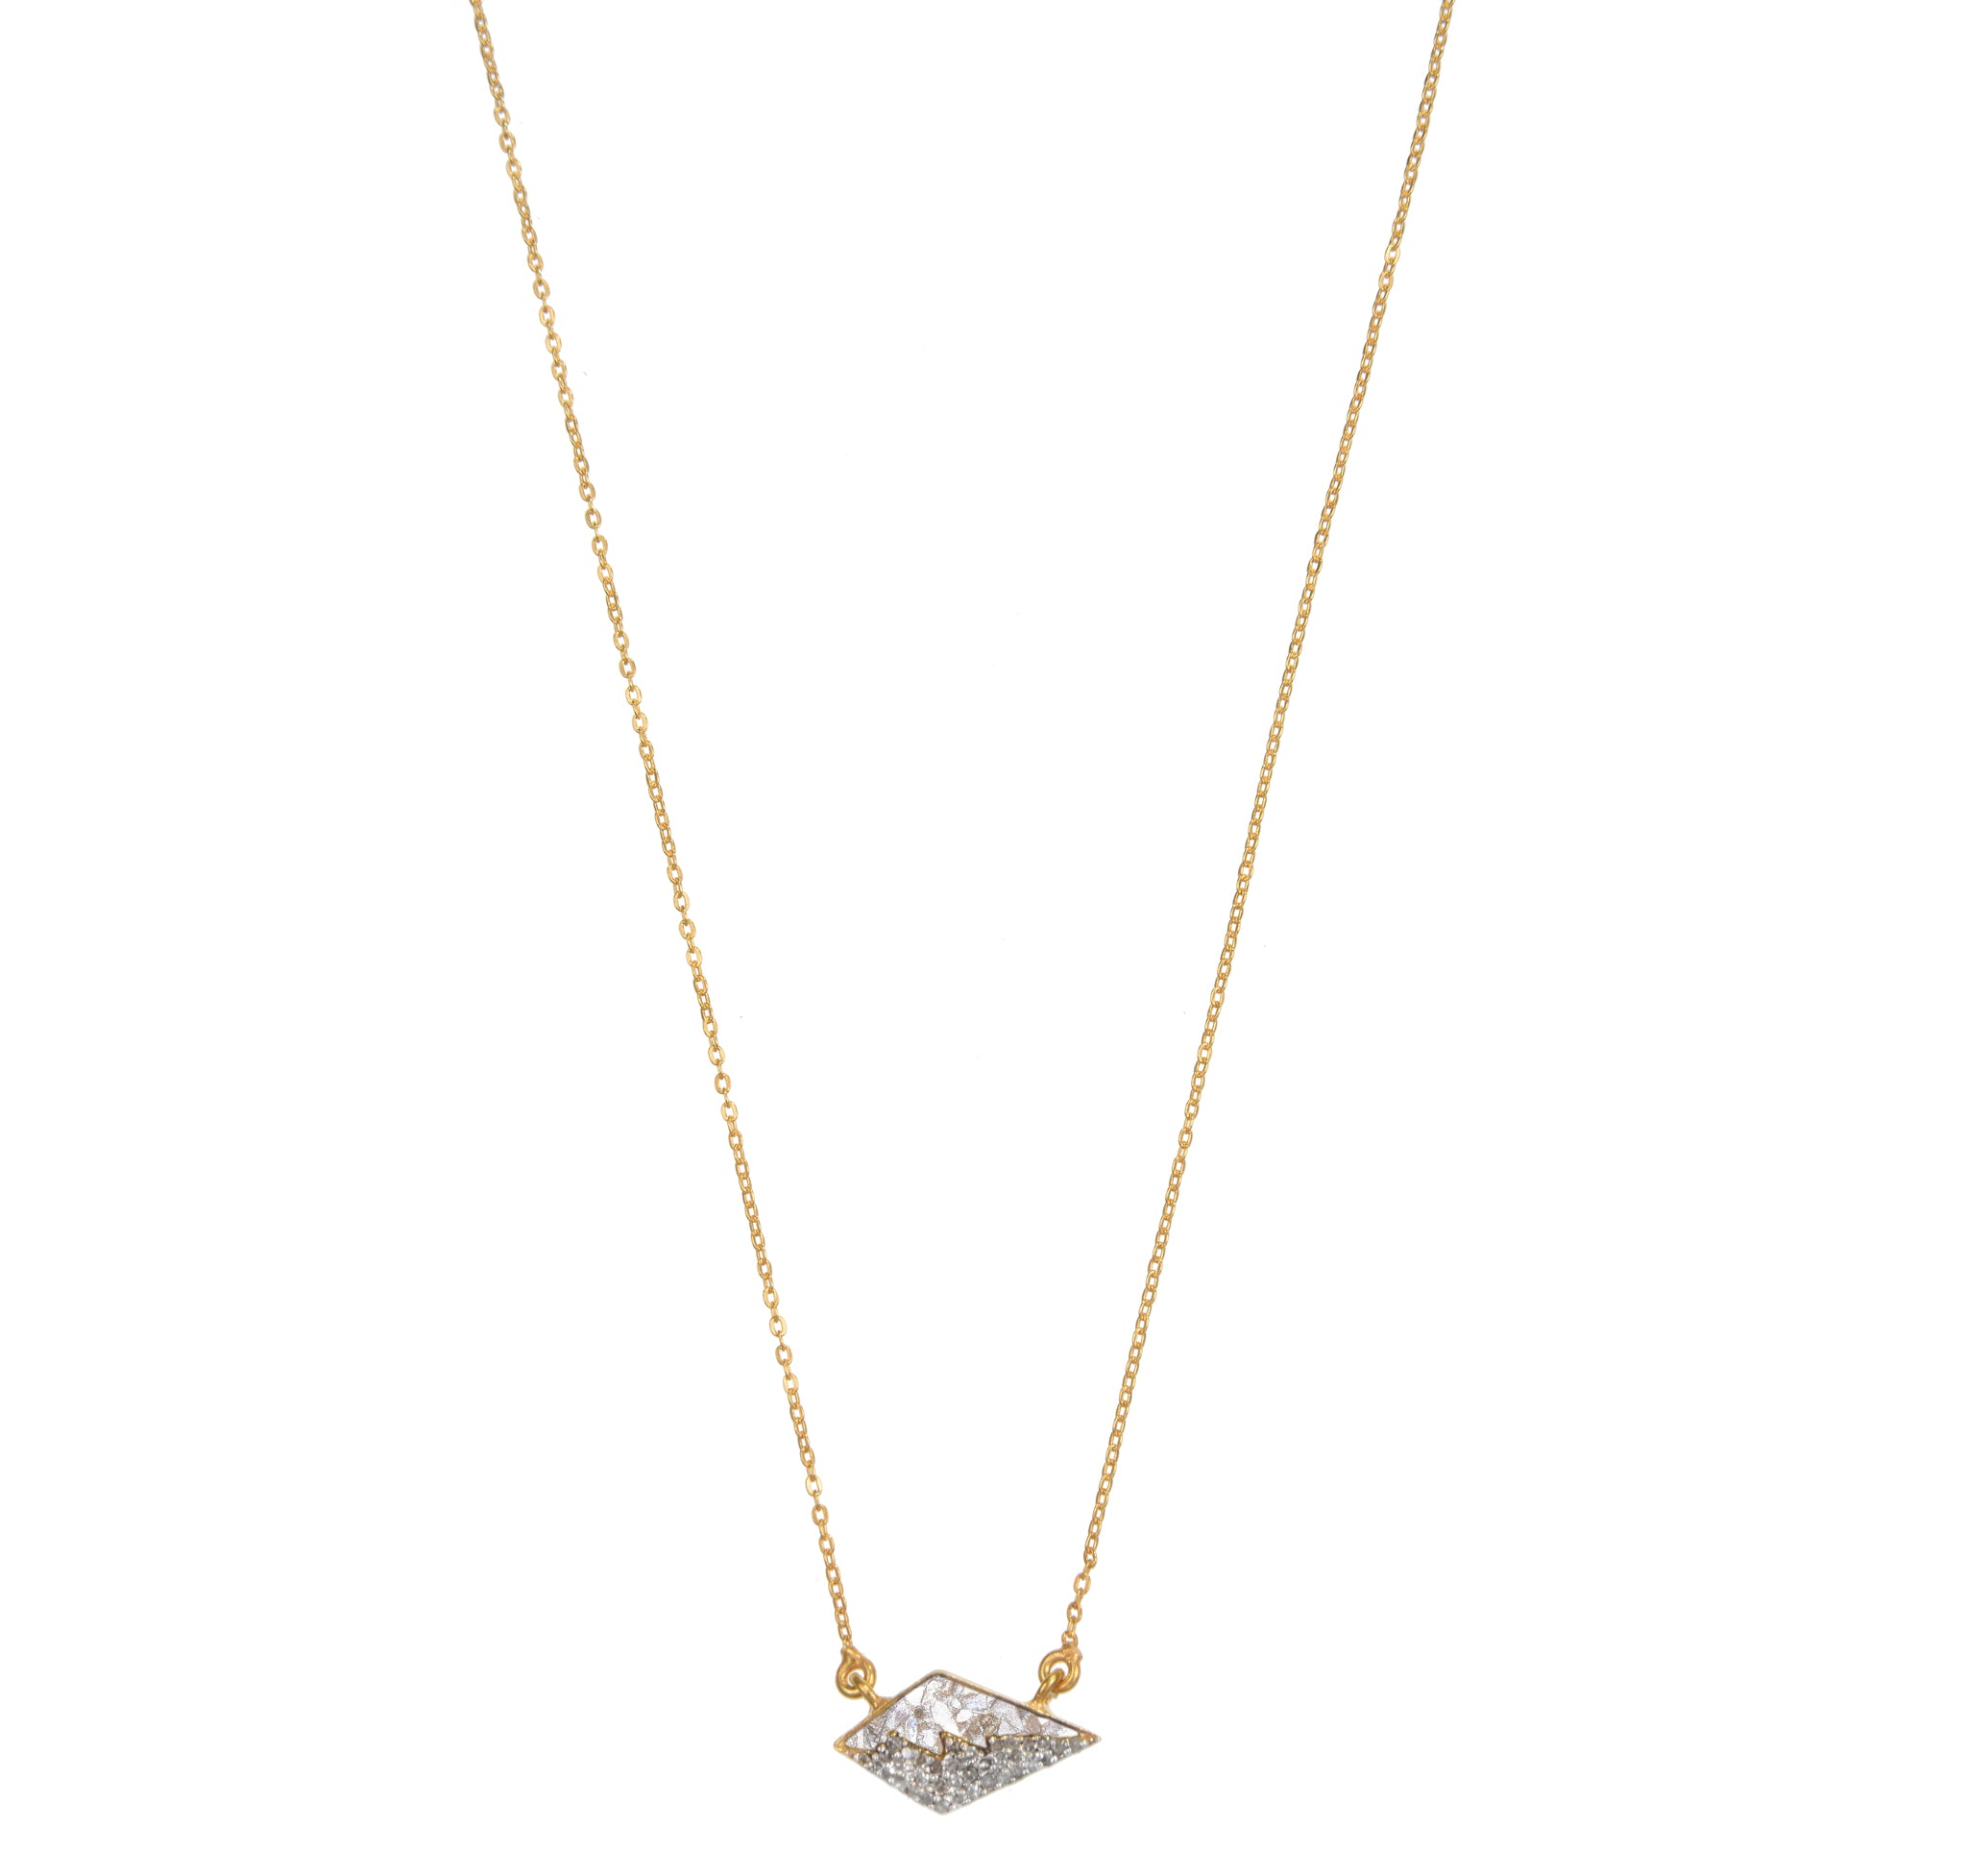 diamond pendant on gold chain necklace